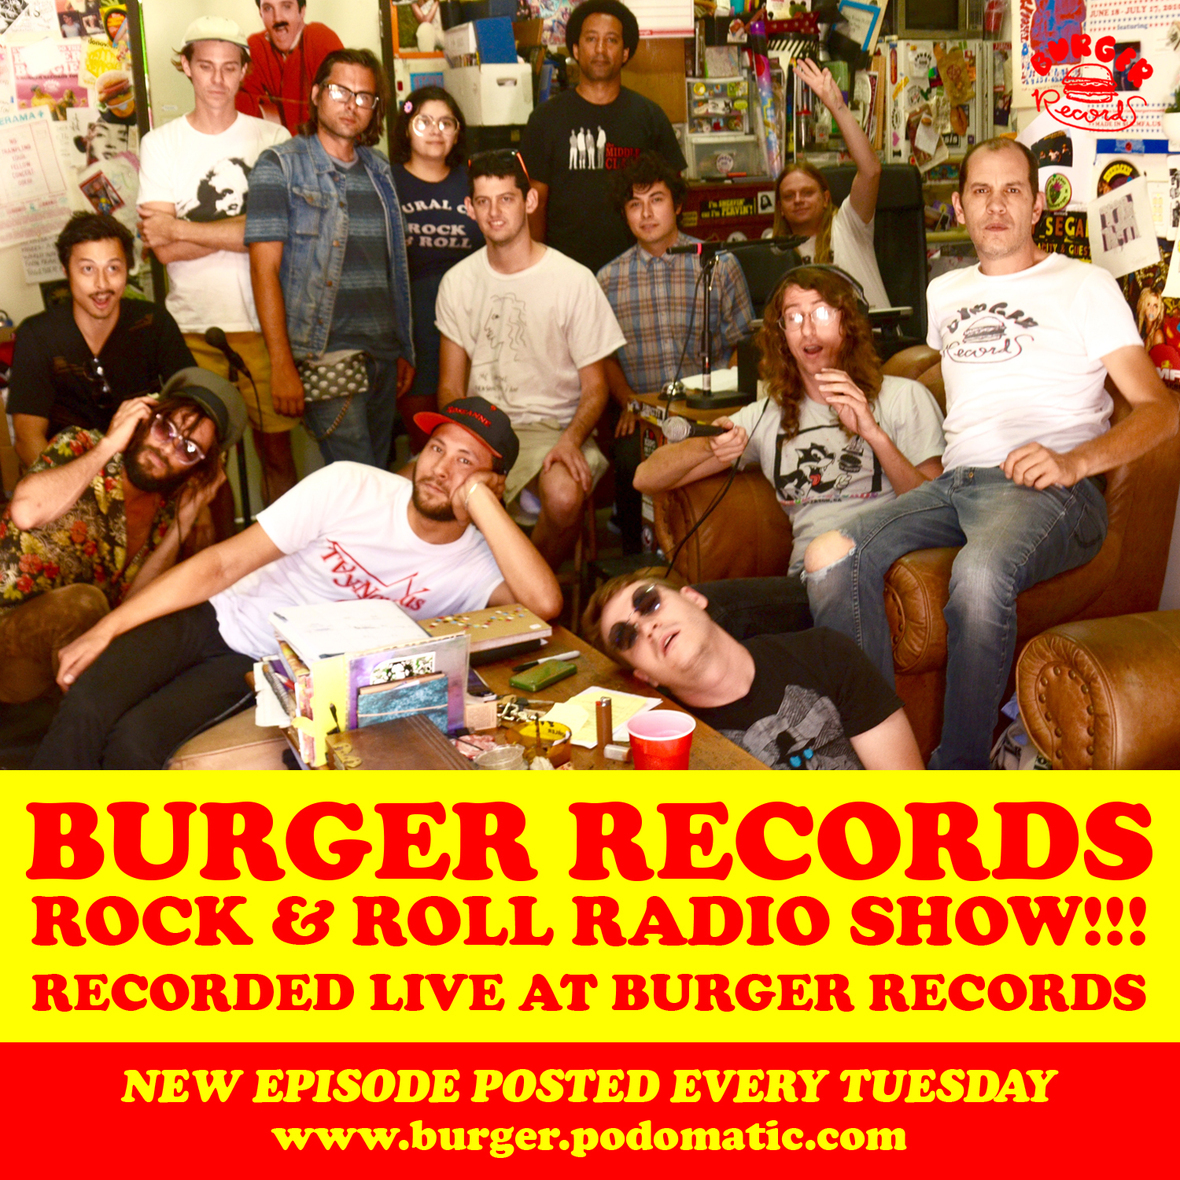 ROCK N ROLL RADIO SHOW COVER37